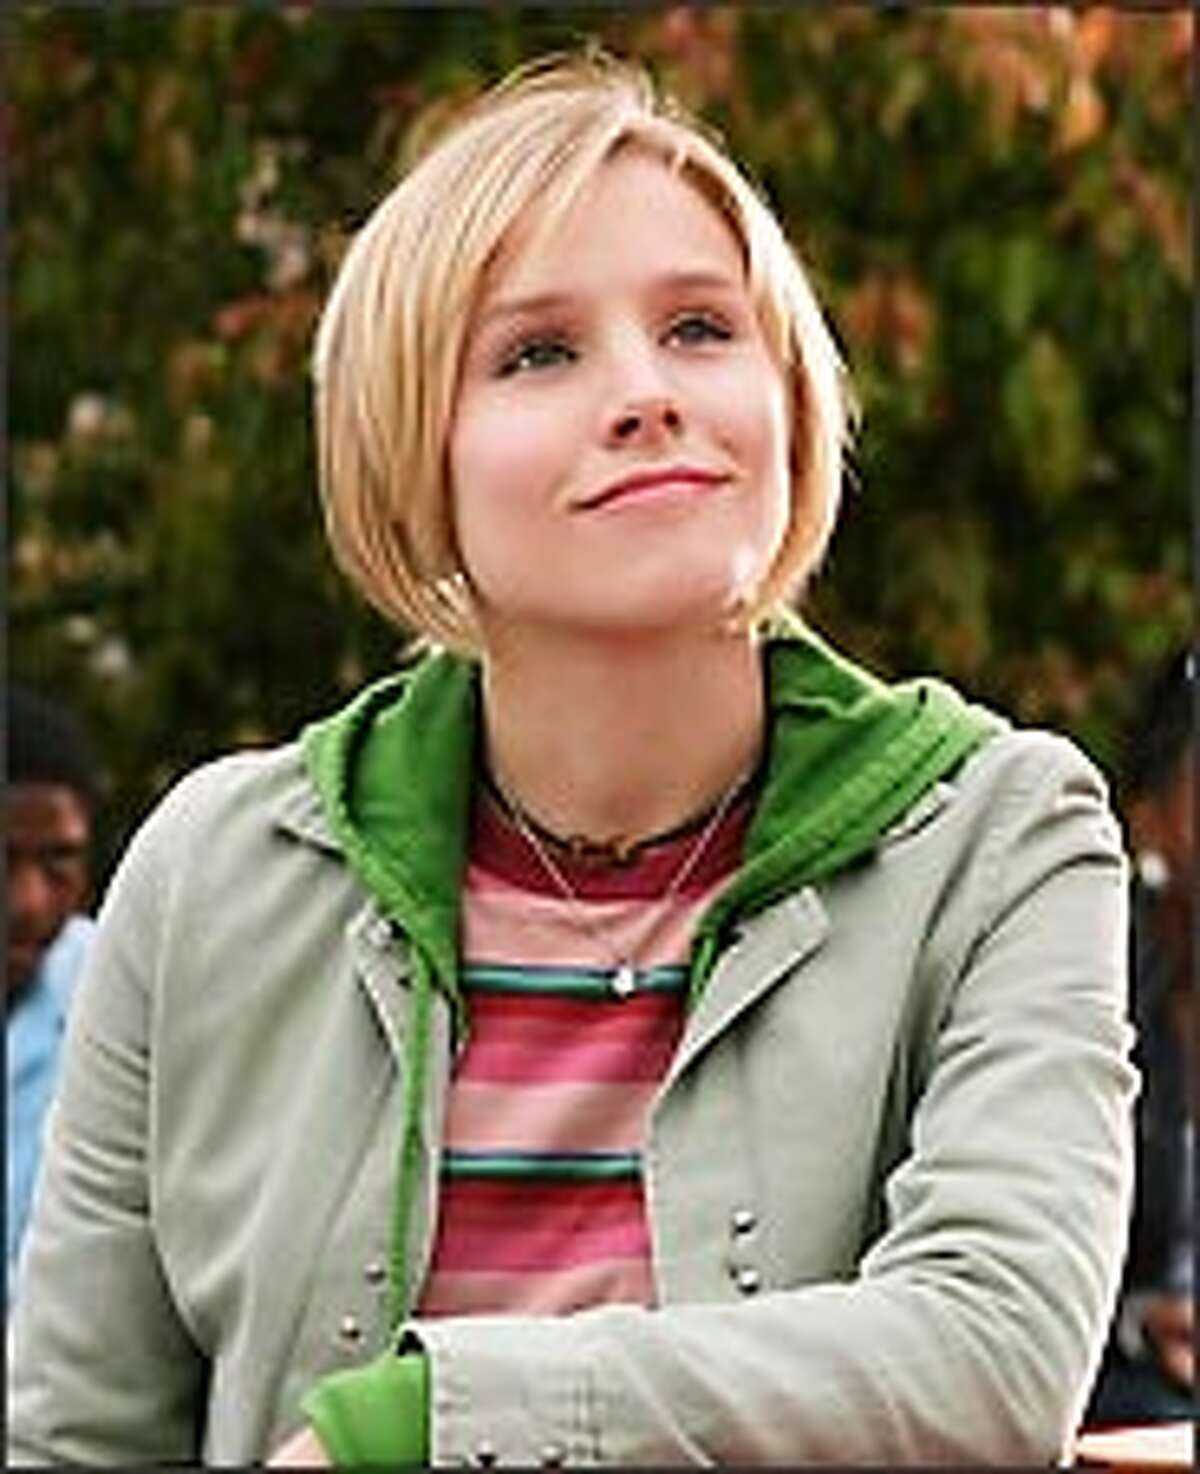 Kristen Bell is cool, realistic and likable as Veronica in UPN's